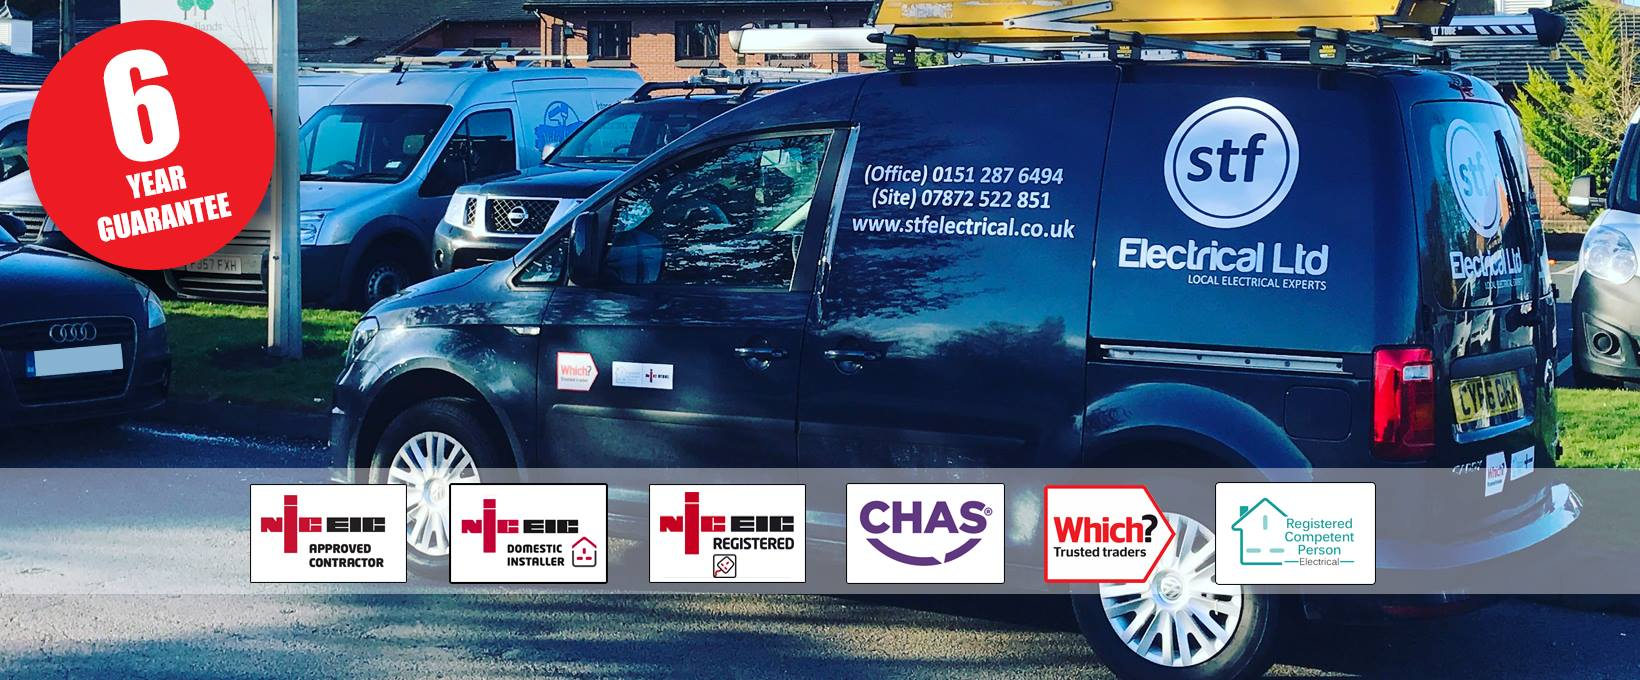 STF Electrical Ltd - Your local electrical expert in Liverpool